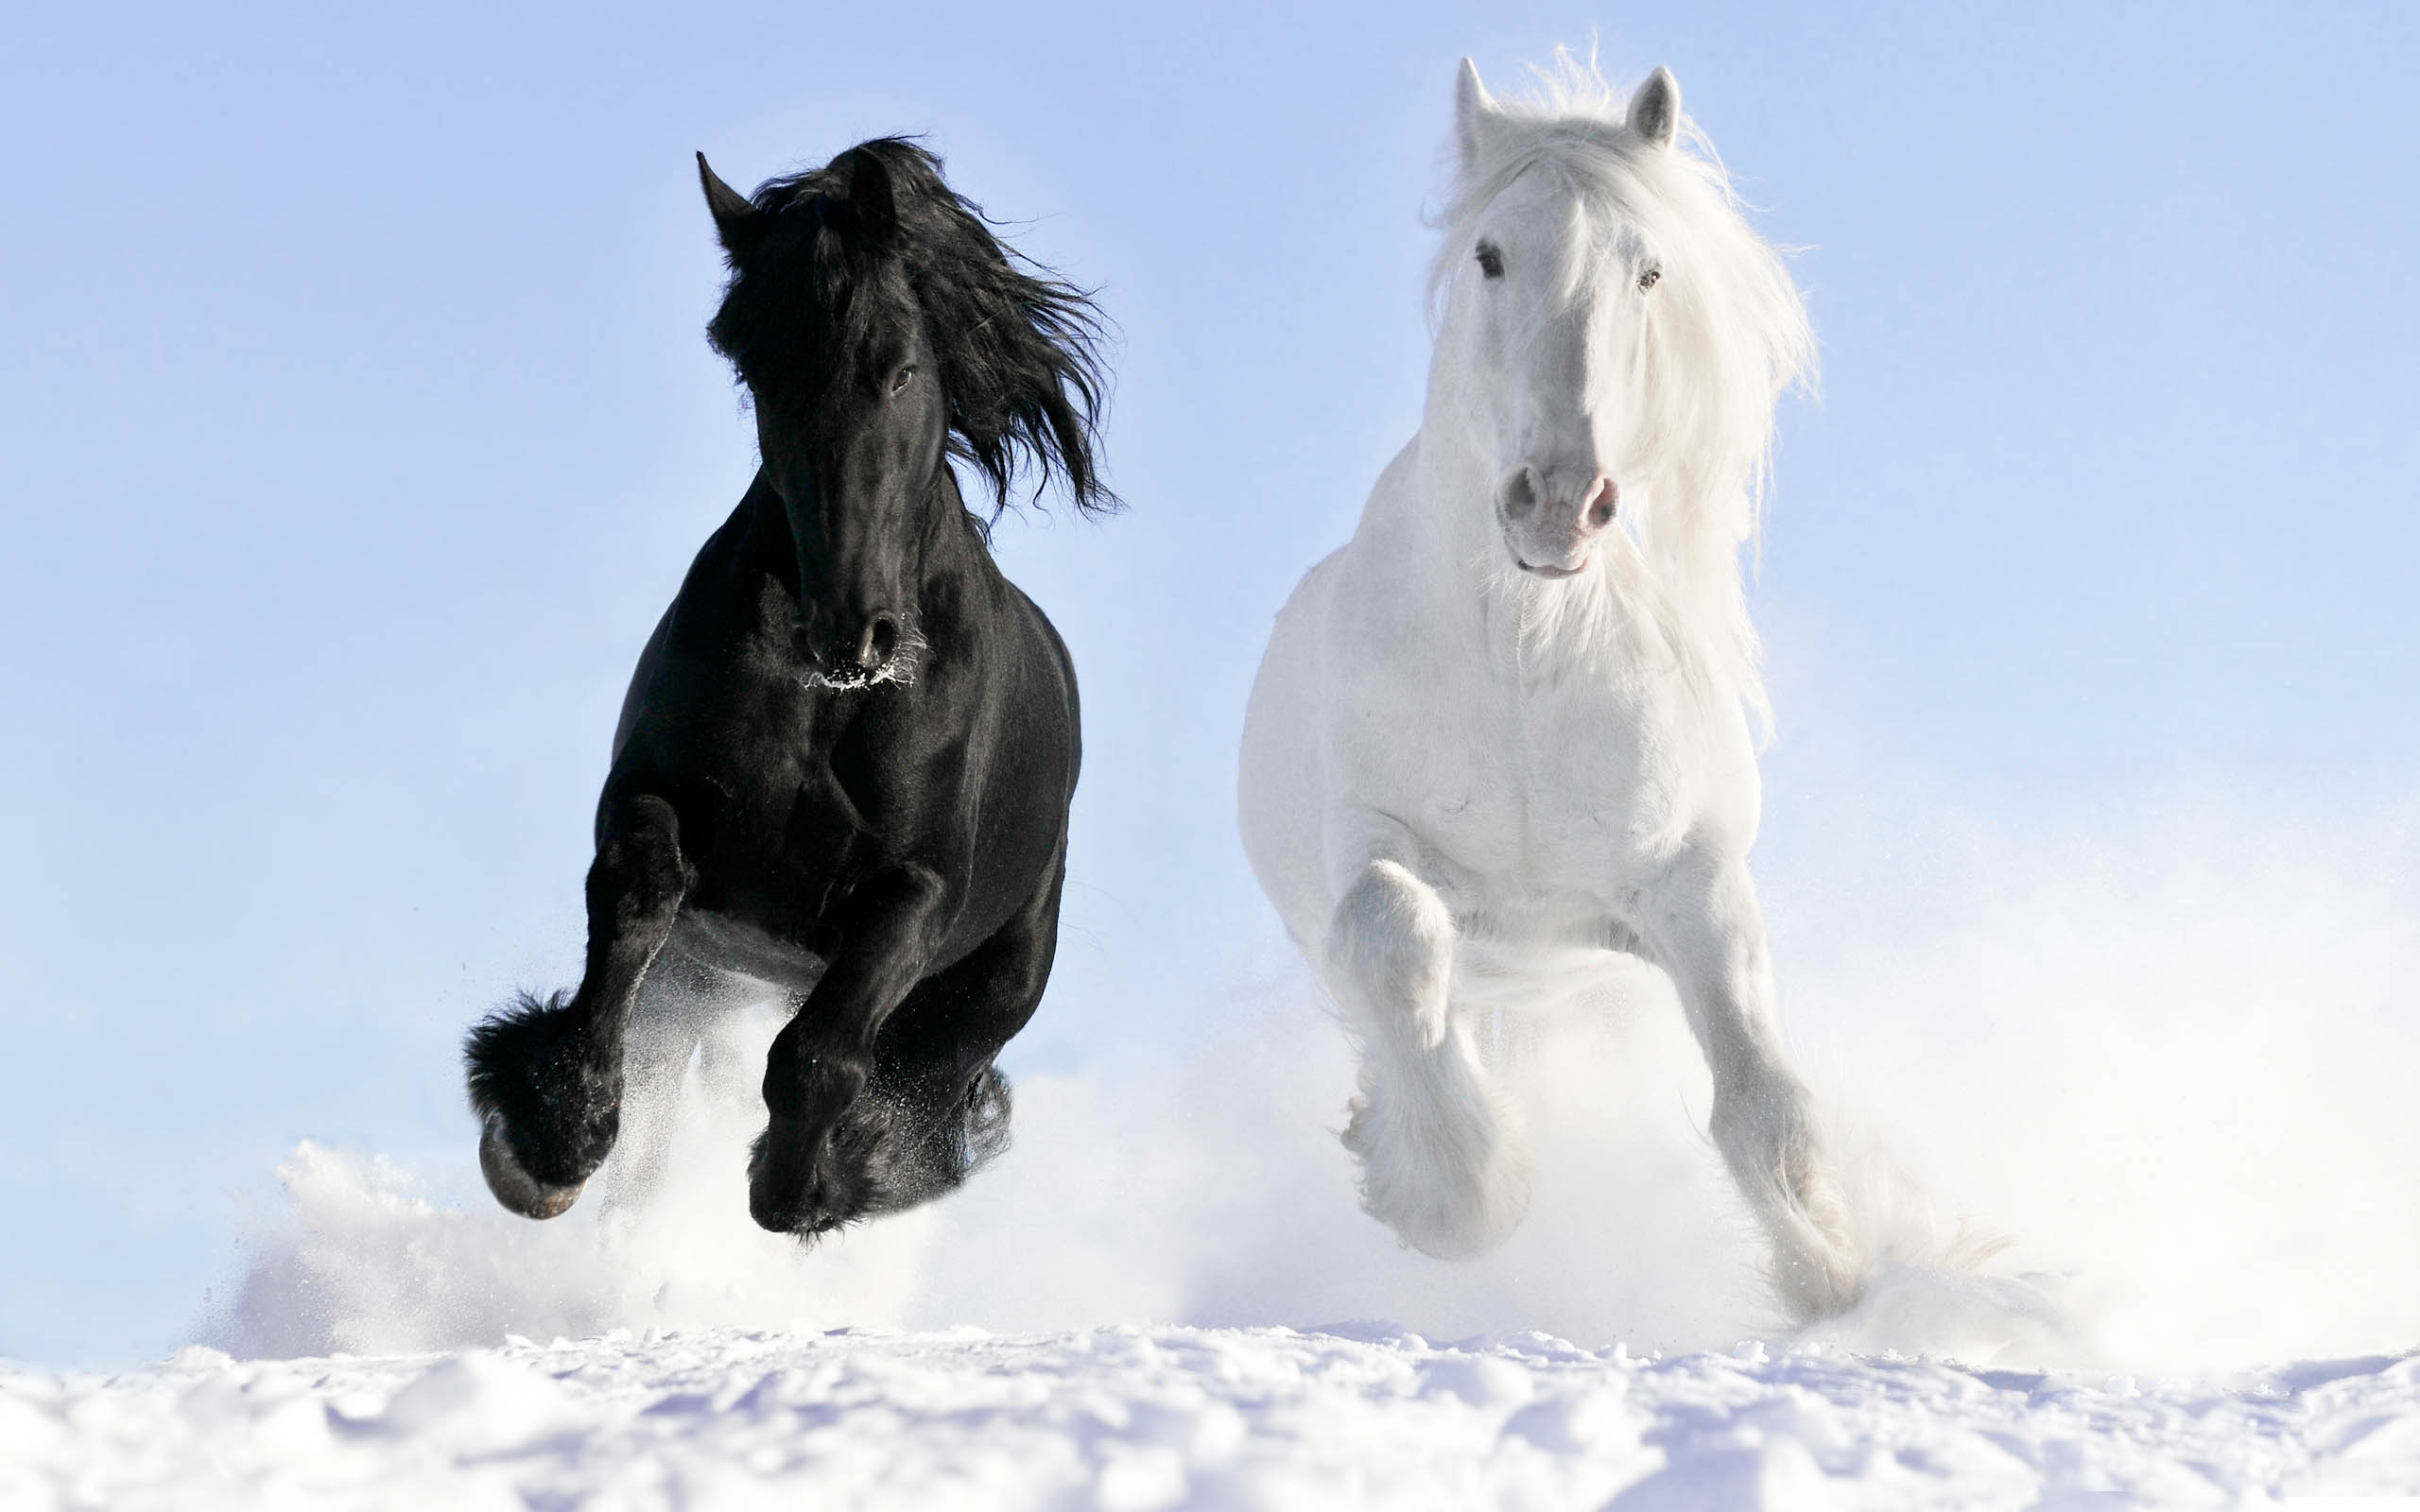 Horses 2017 hd wallpapers collections beautiful horses some awesome hd wallpapers altavistaventures Gallery